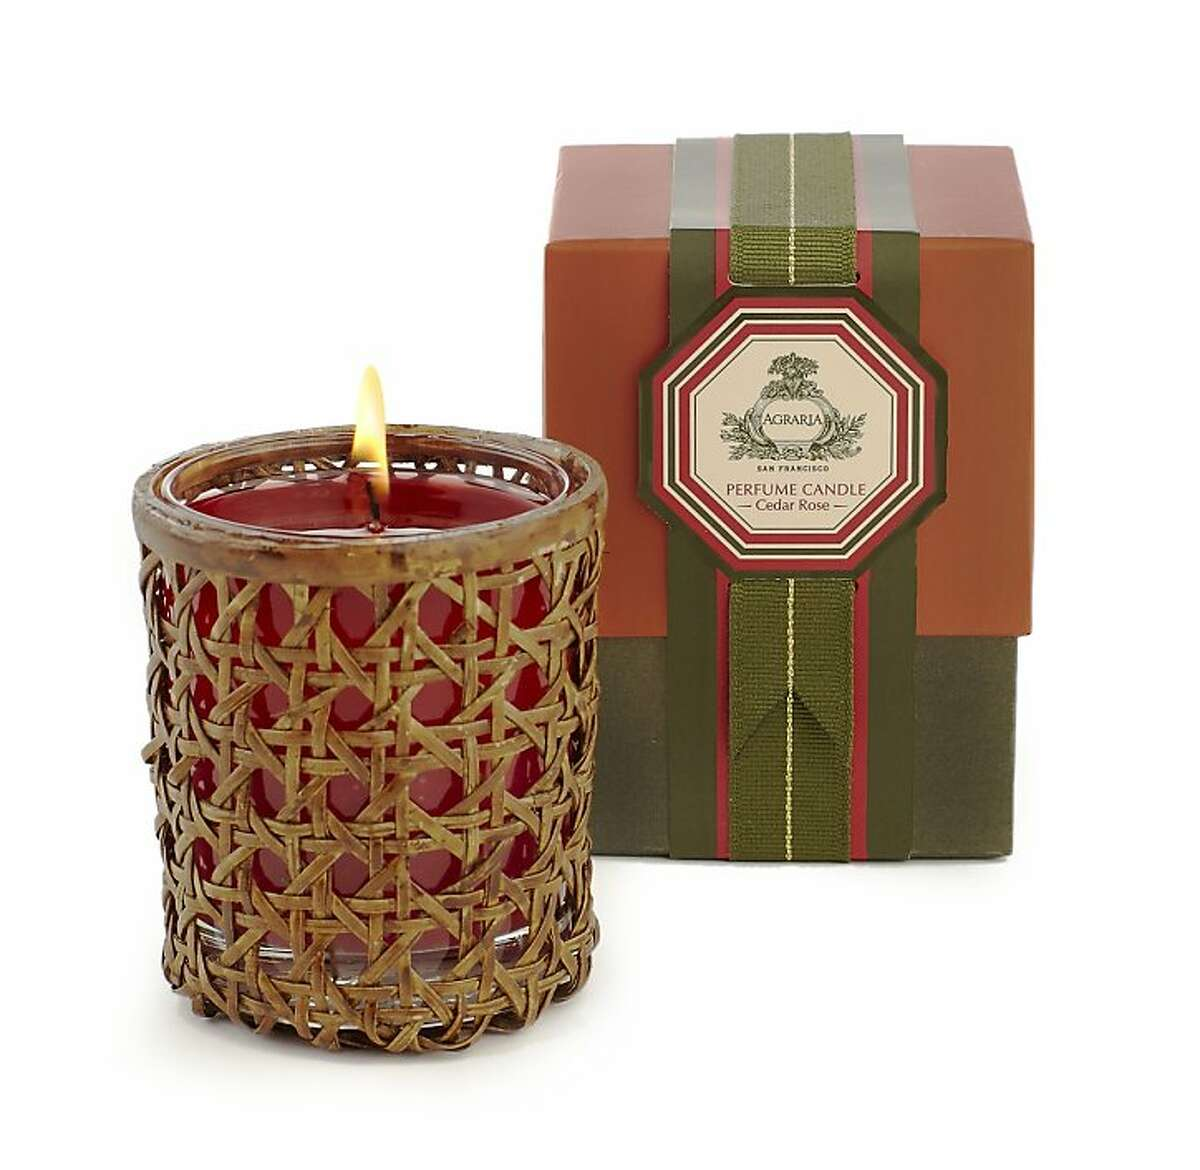 Agraria: I love their scented candles and tassels. The scents are complex and spicy, setting the tone for any room. Cedar Rose is my favorite of their fragrances. (www.agrariahome.com)